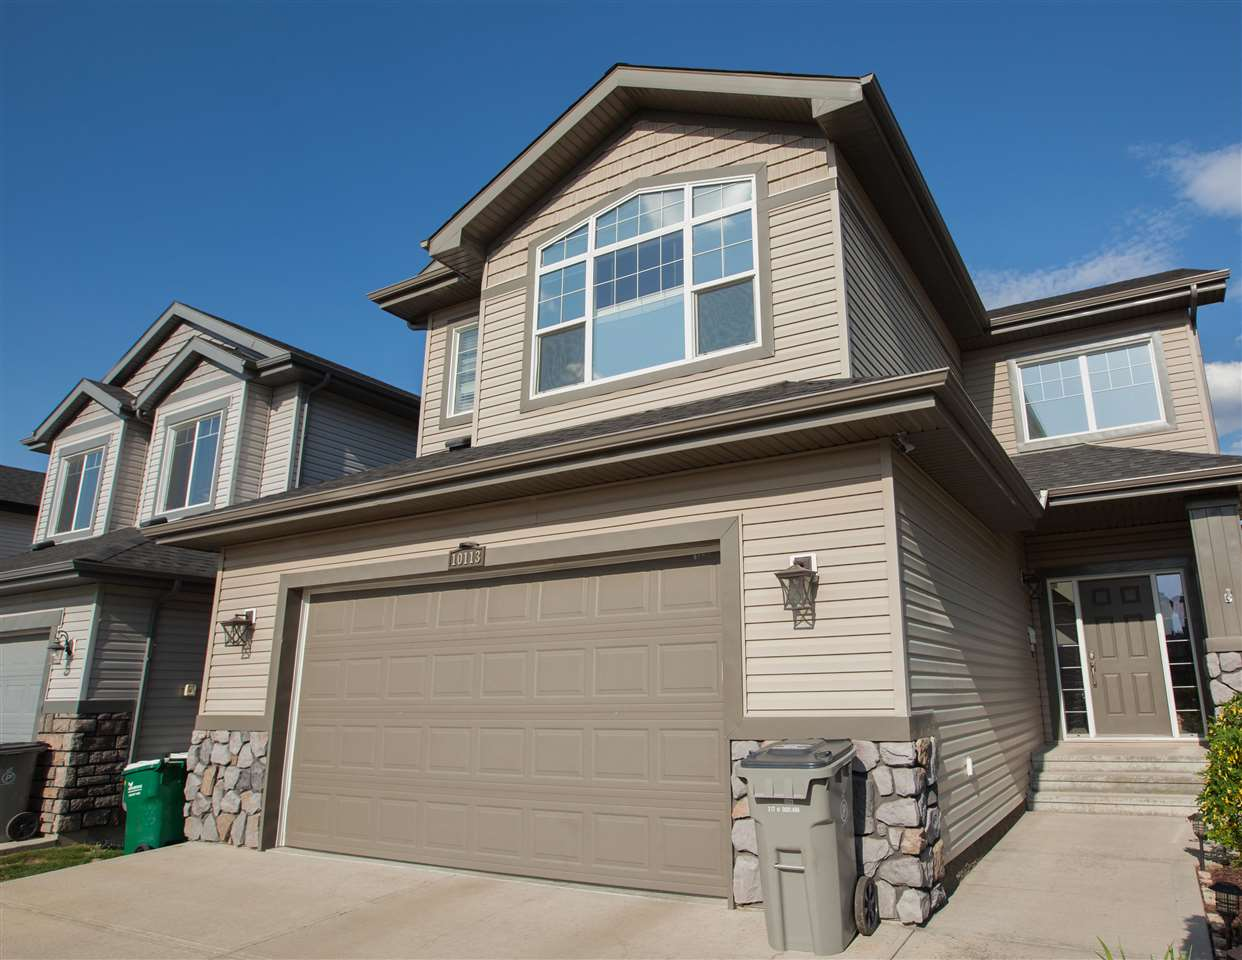 Main Photo: 10113 93 Street: Morinville House for sale : MLS®# E4127627